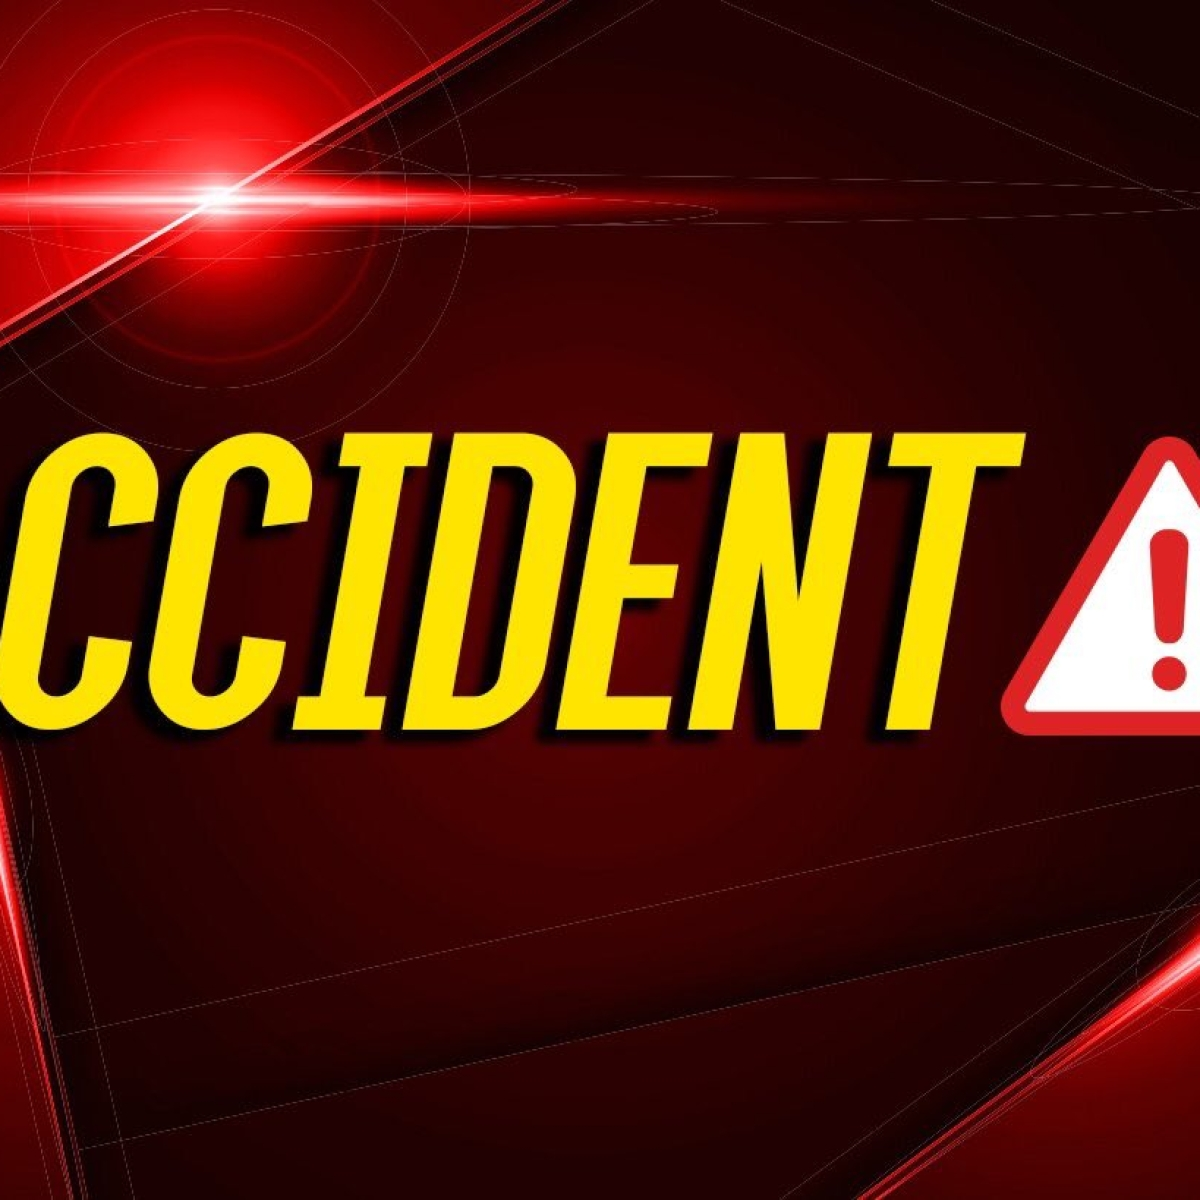 Thane: Two die as heavy vehicle rams their scooty at Mumbra bypass road